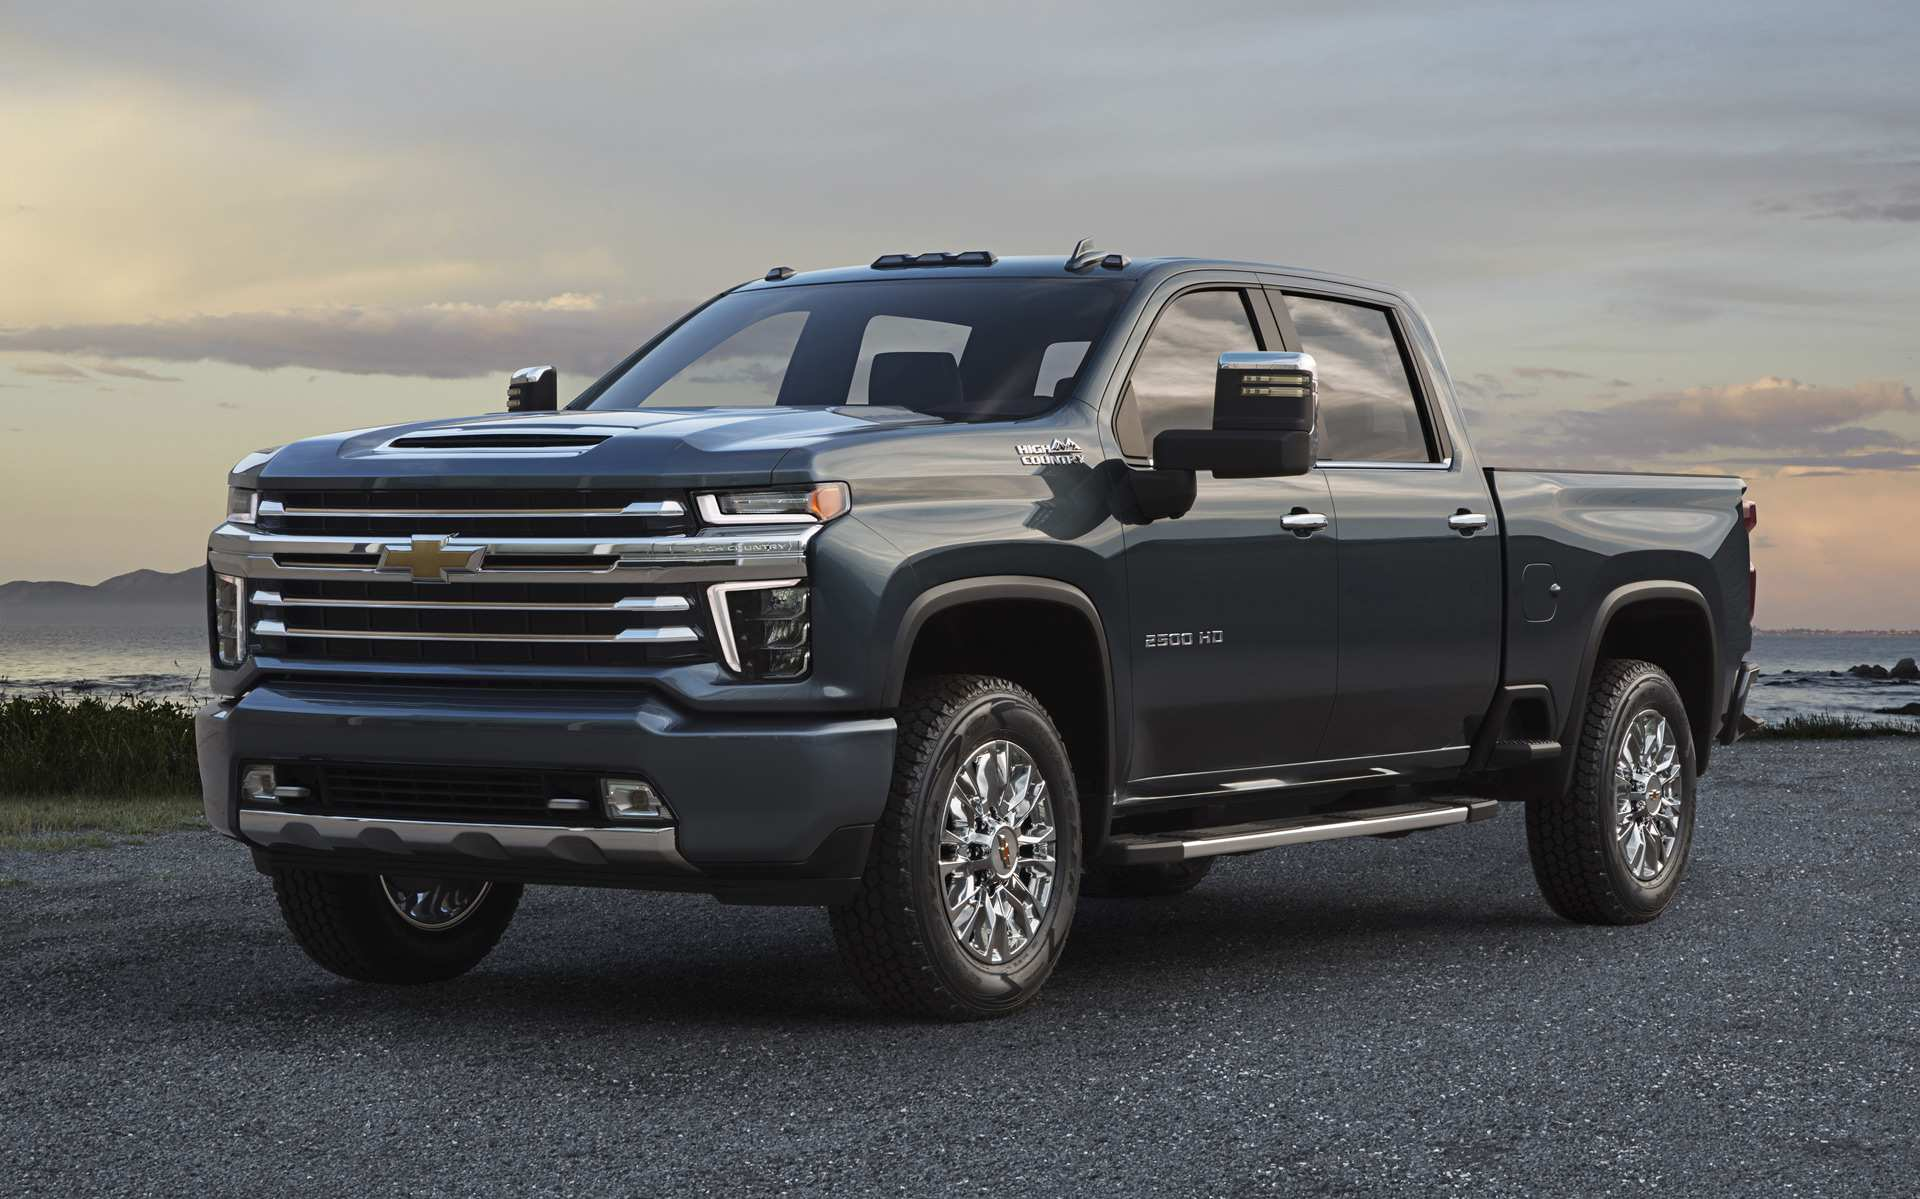 62 The Best 2020 GMC 2500 6 6 Gas Release Date